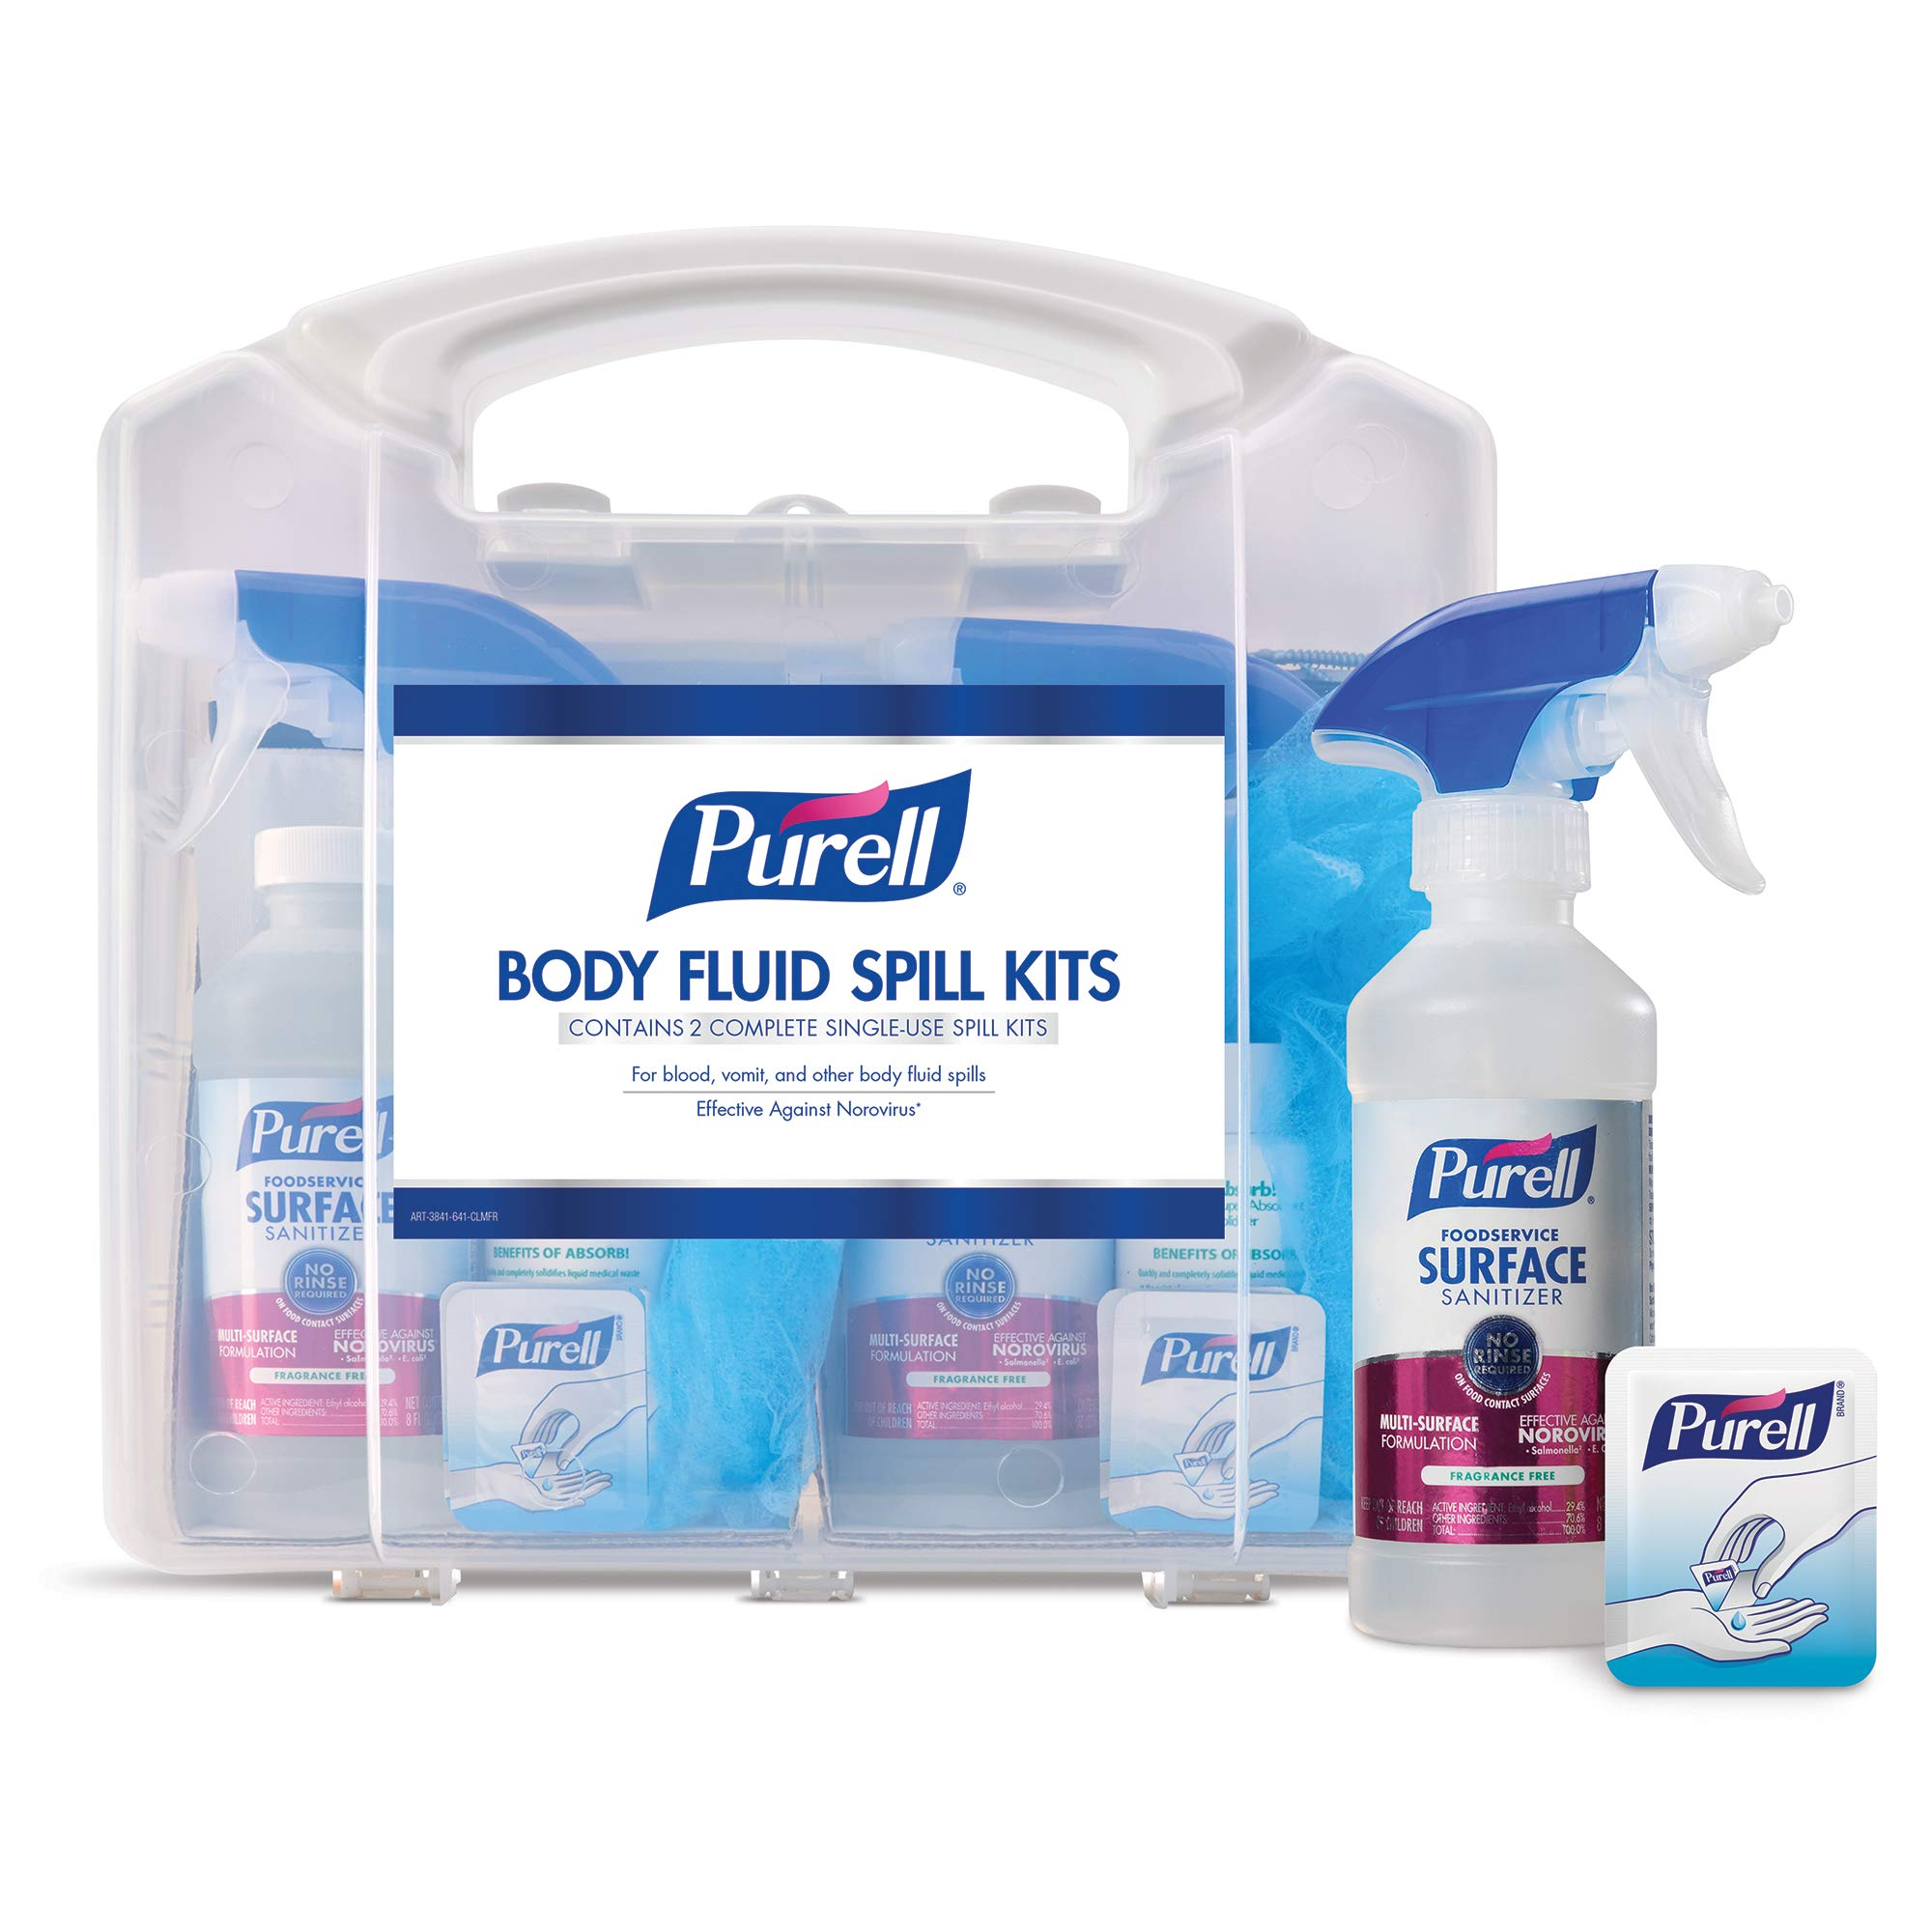 PURELL Body Fluid Spill Kit in Clam Shell Carrier, 2 Spill Kit Uses per Clamshell (Pack of 1)- 3841-08-CLMS by Purell